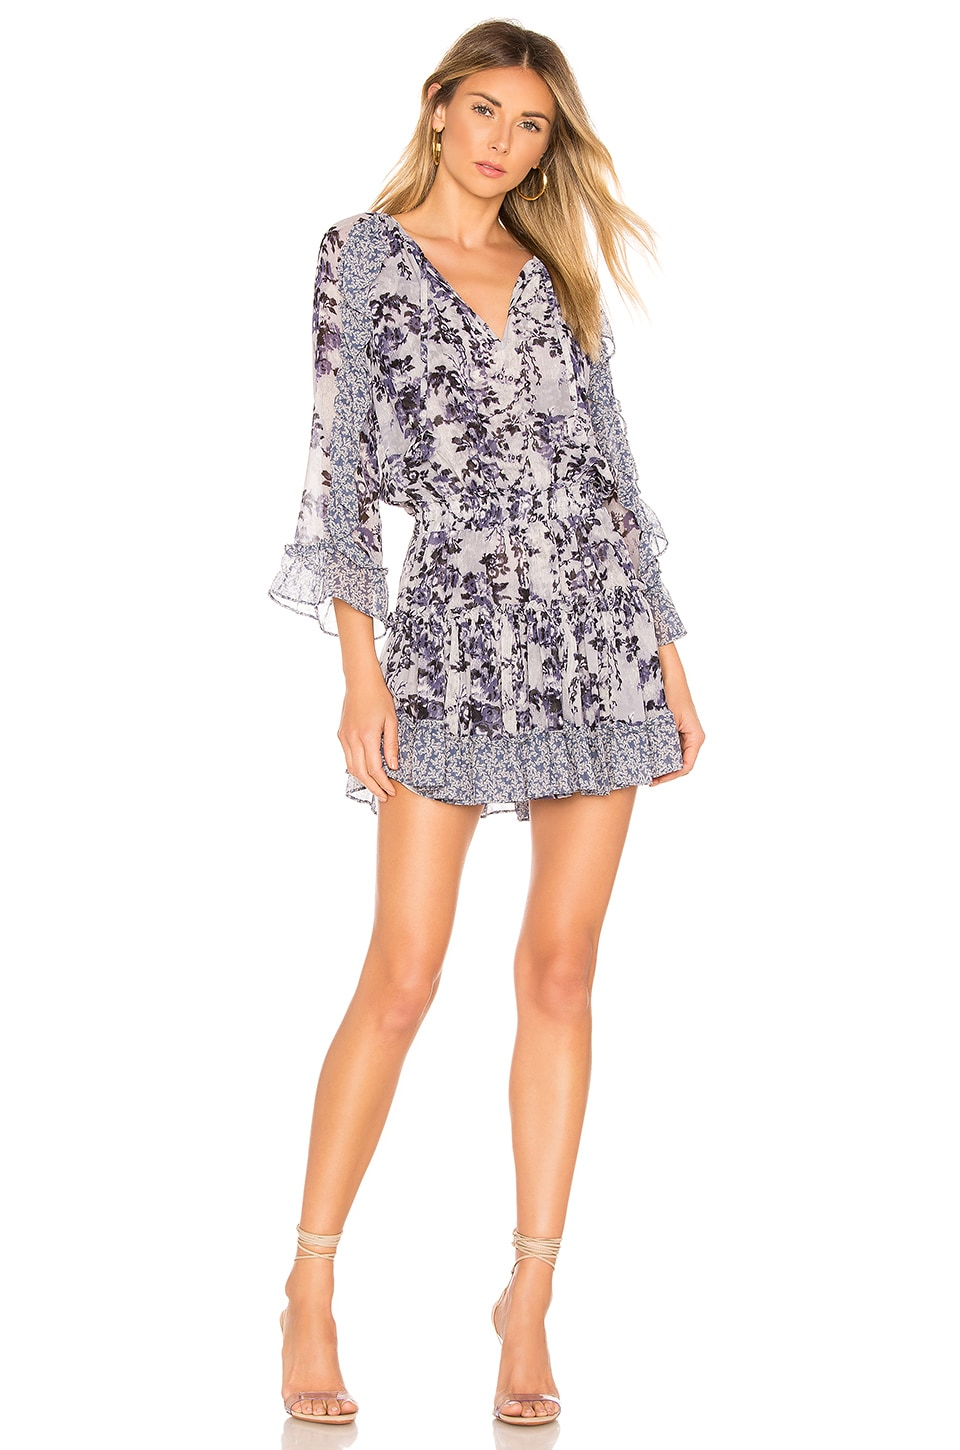 MISA Los Angeles Eliza Dress in Blue Multi Floral